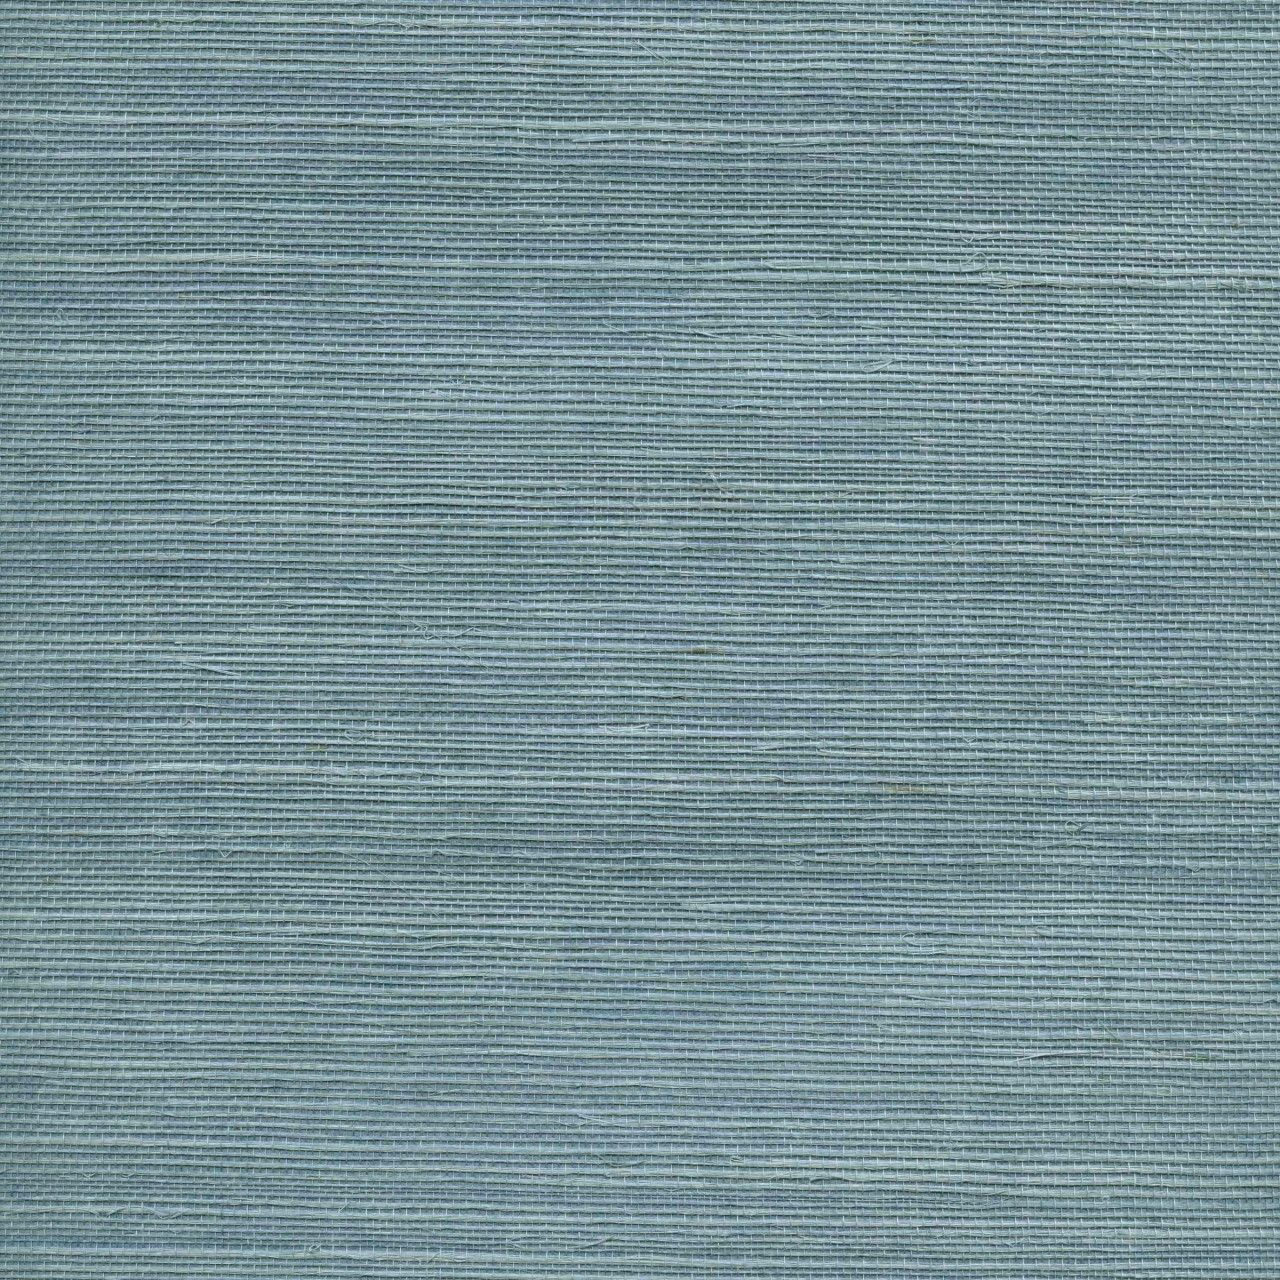 15 Must See Grass Cloth Wallpaper Pins: Blue Karma GR70237 Wallpaper Is Unpasted, 36 Inches Wide